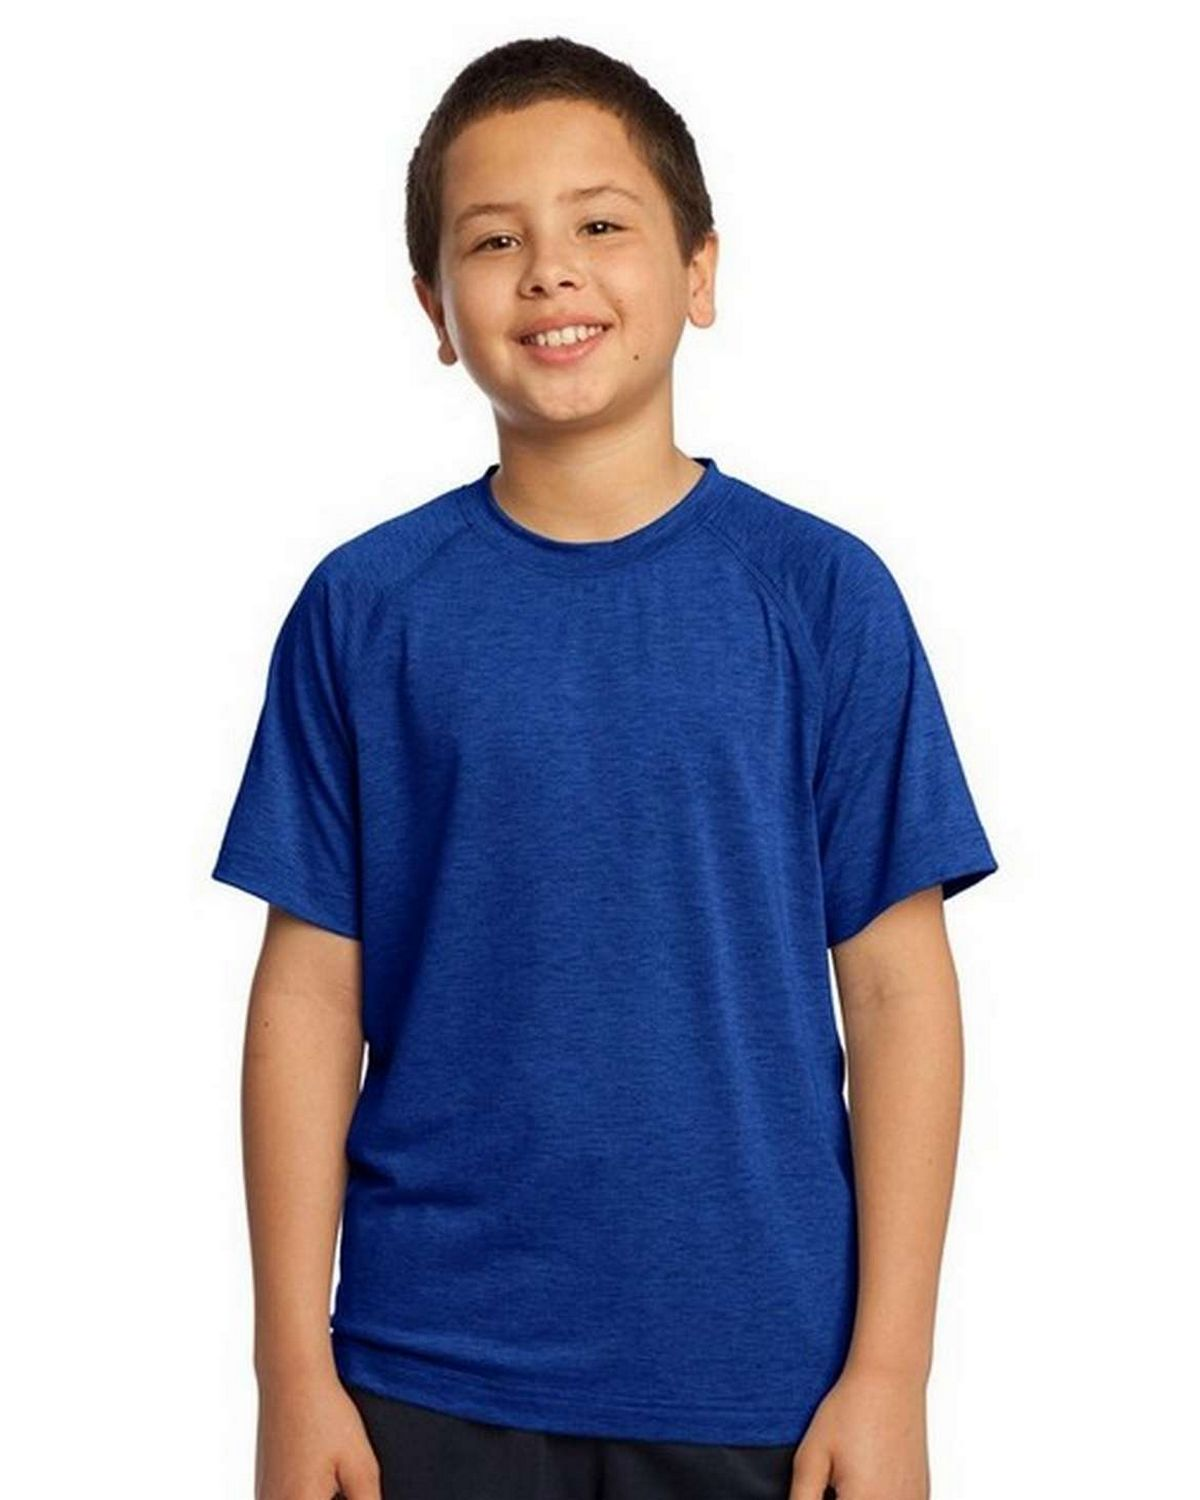 Sport-Tek YST700 Youth Ultimate Performance Crew T-Shirt